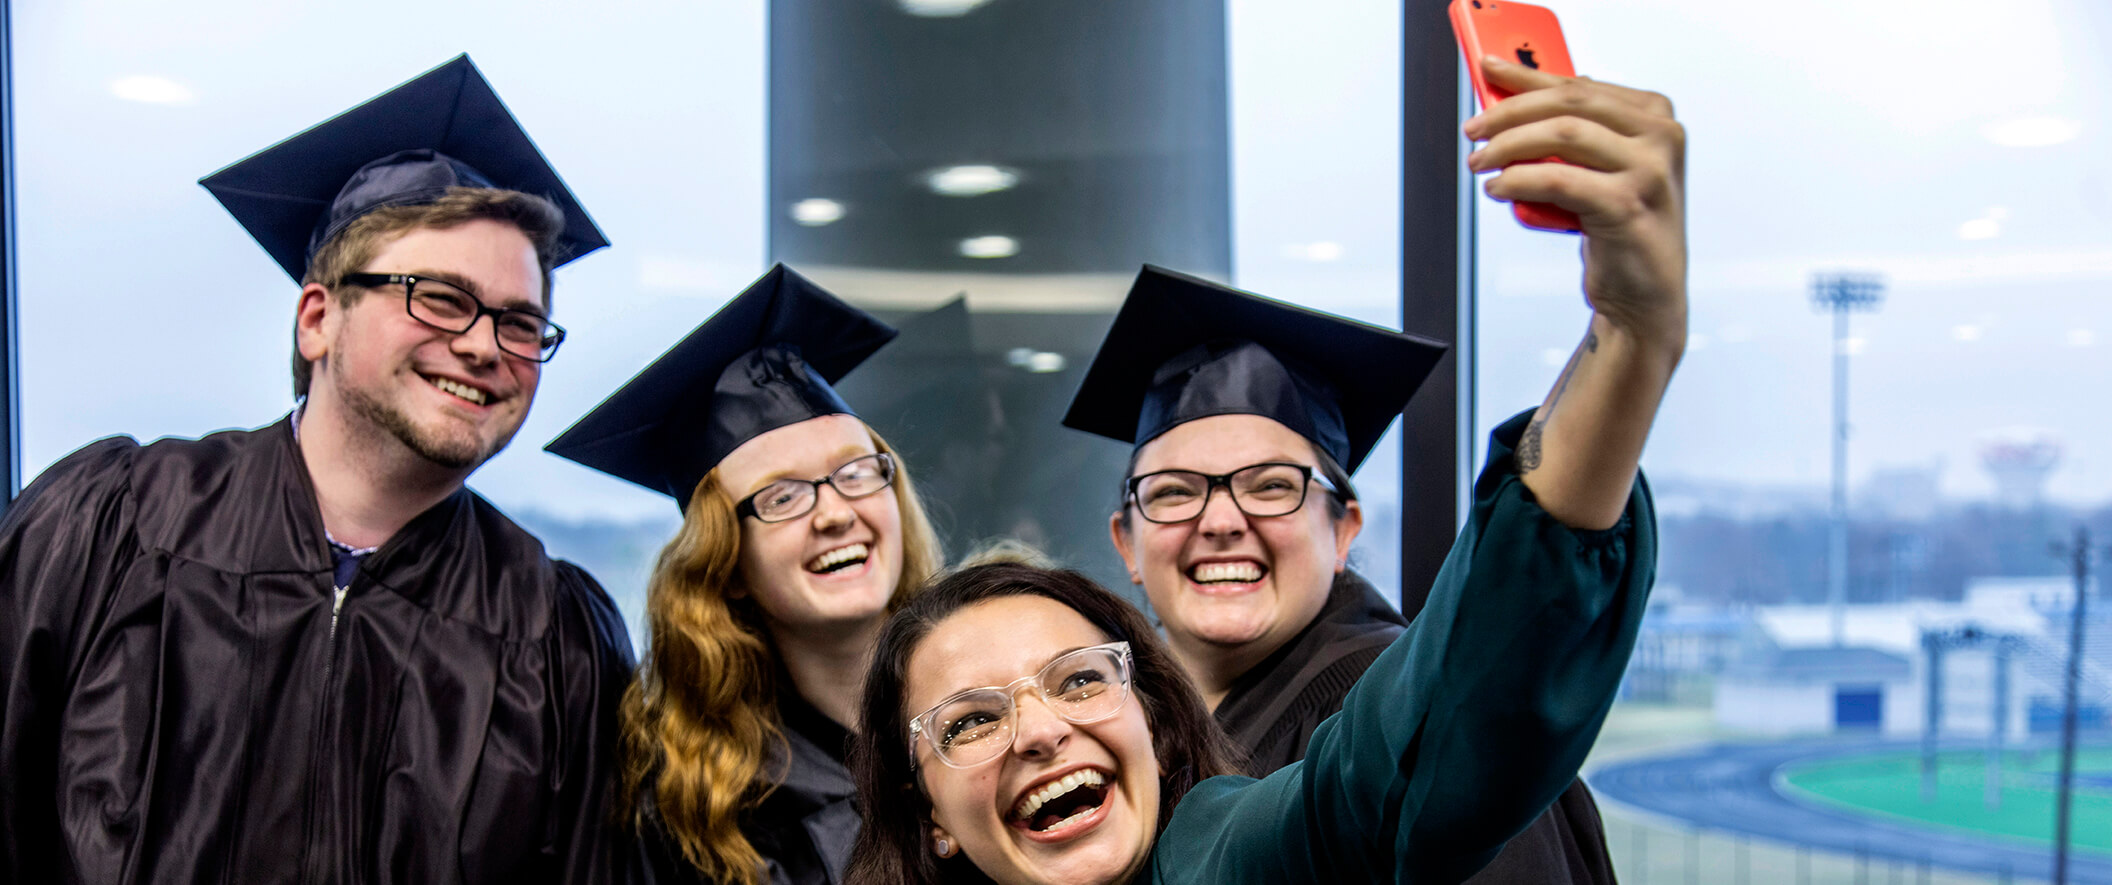 Three graduates and a friend taking a selfie on a cell phone